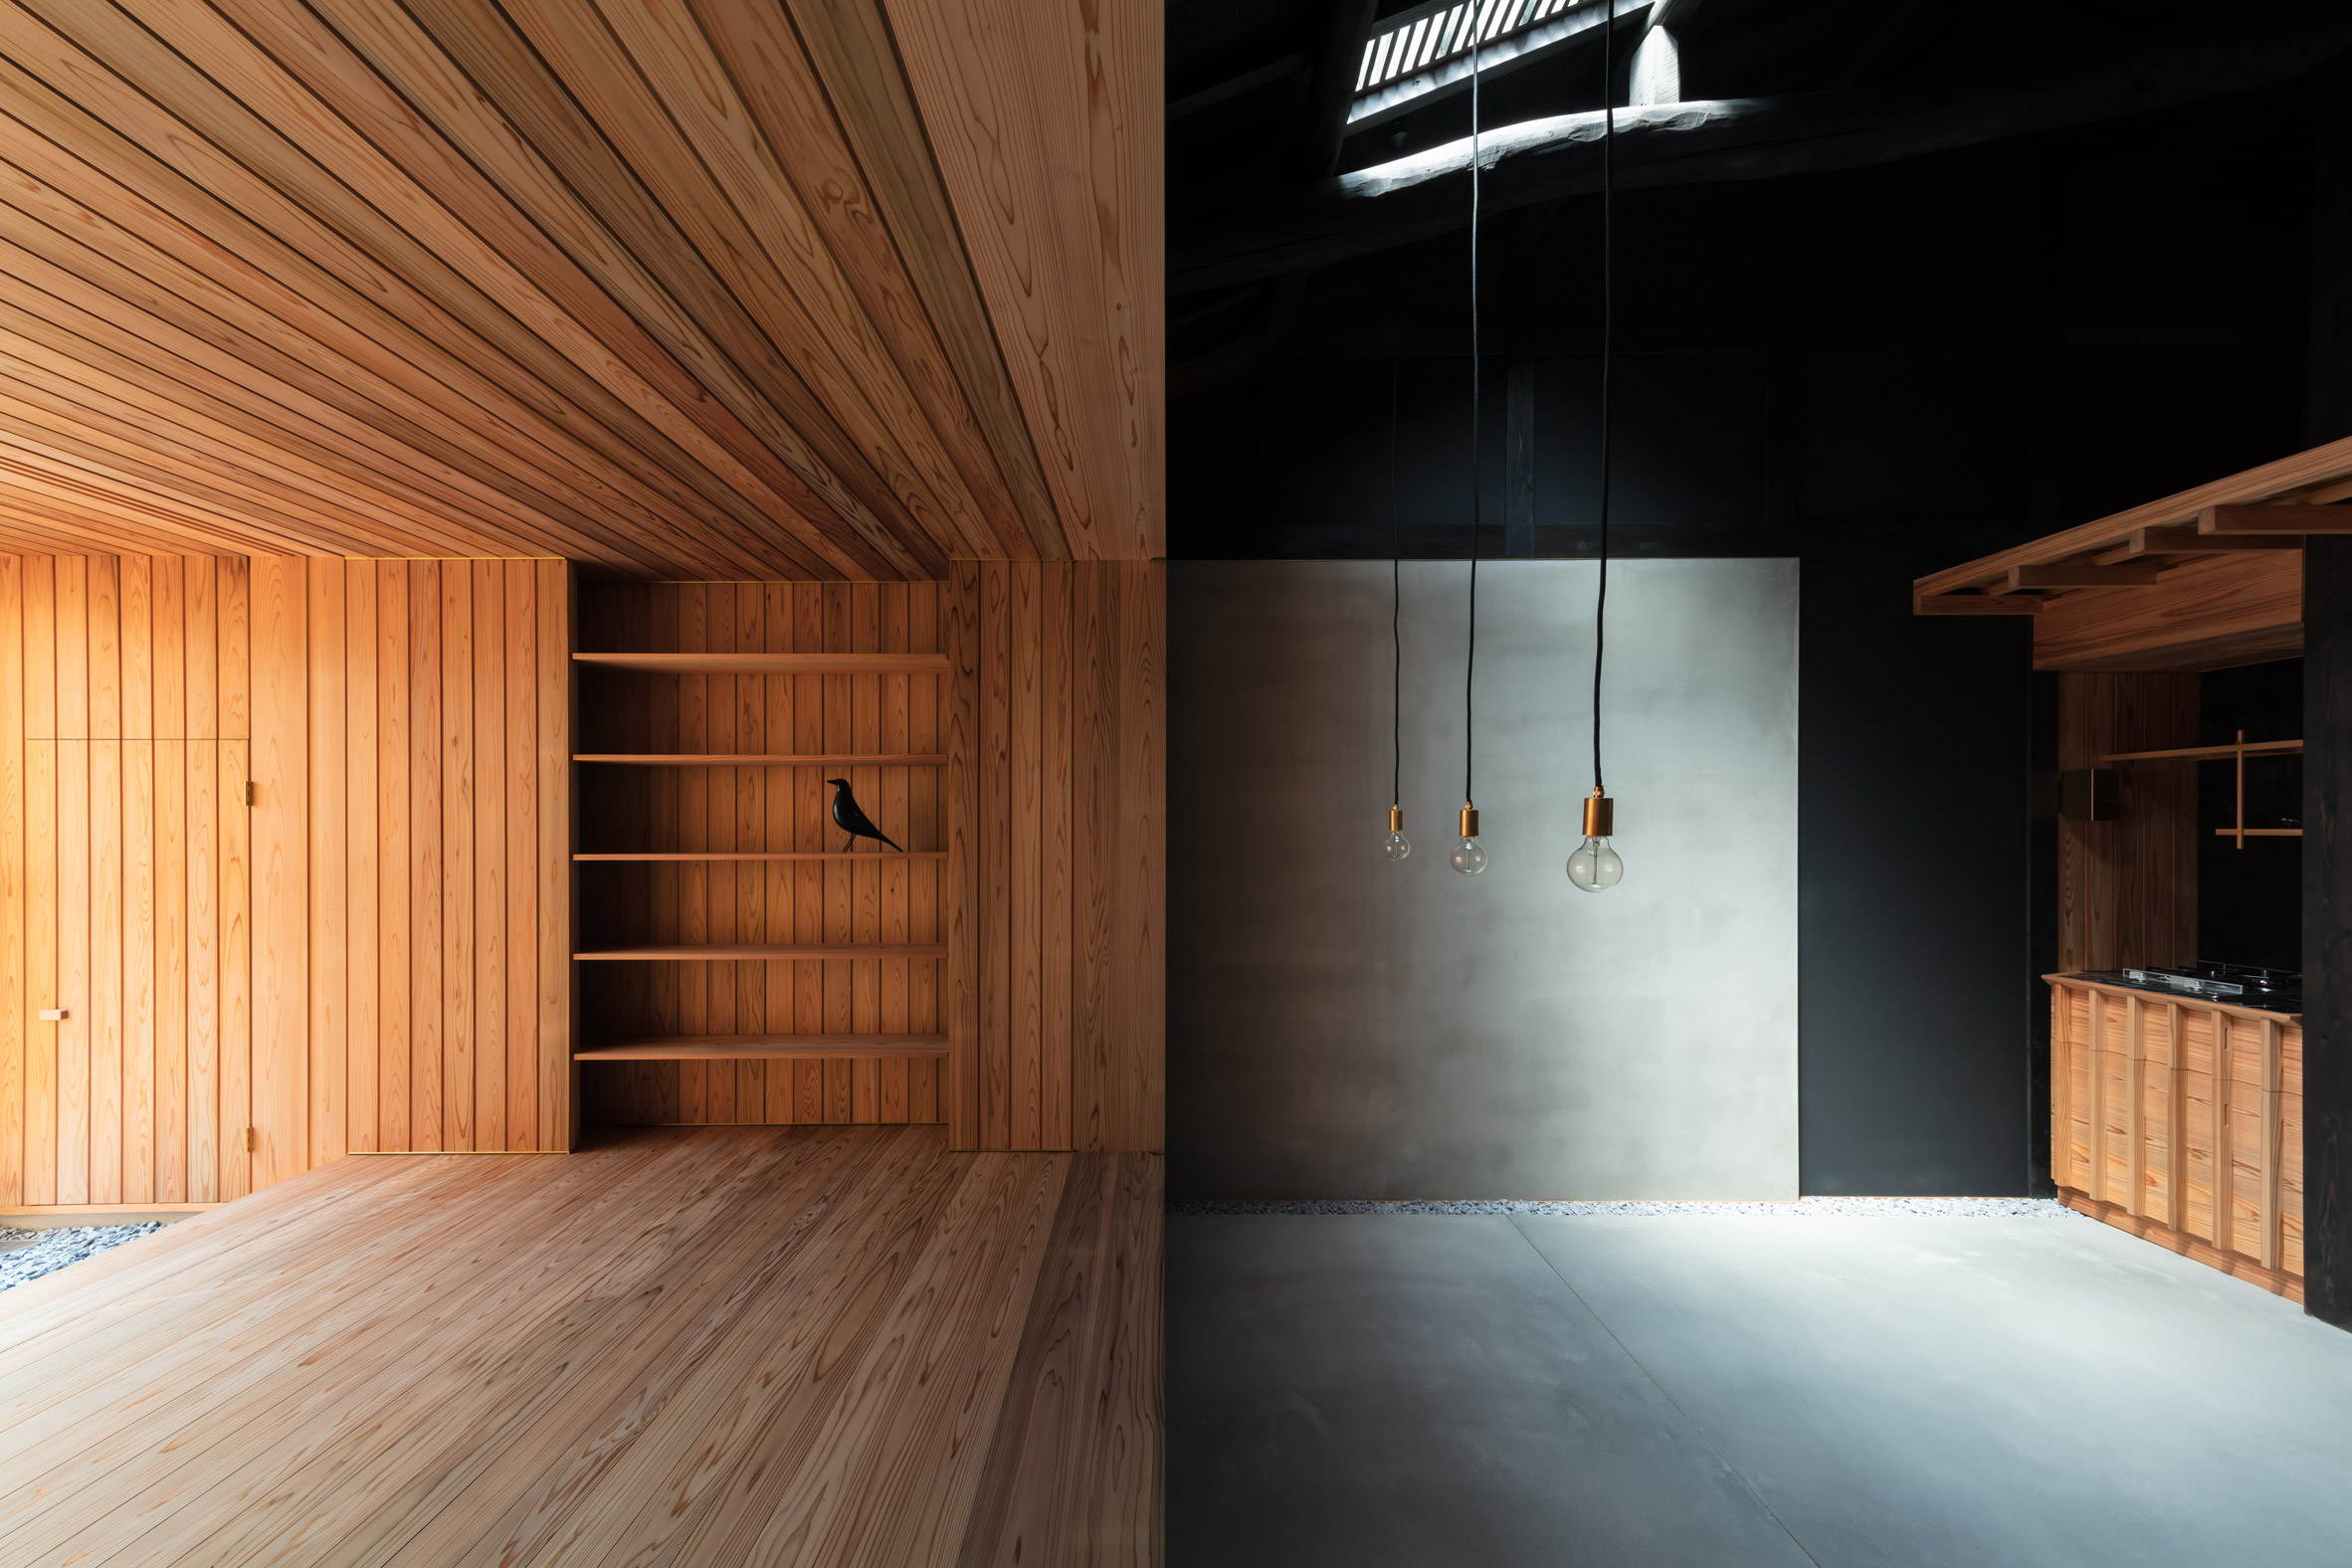 A Japanese house with contrasting living spaces